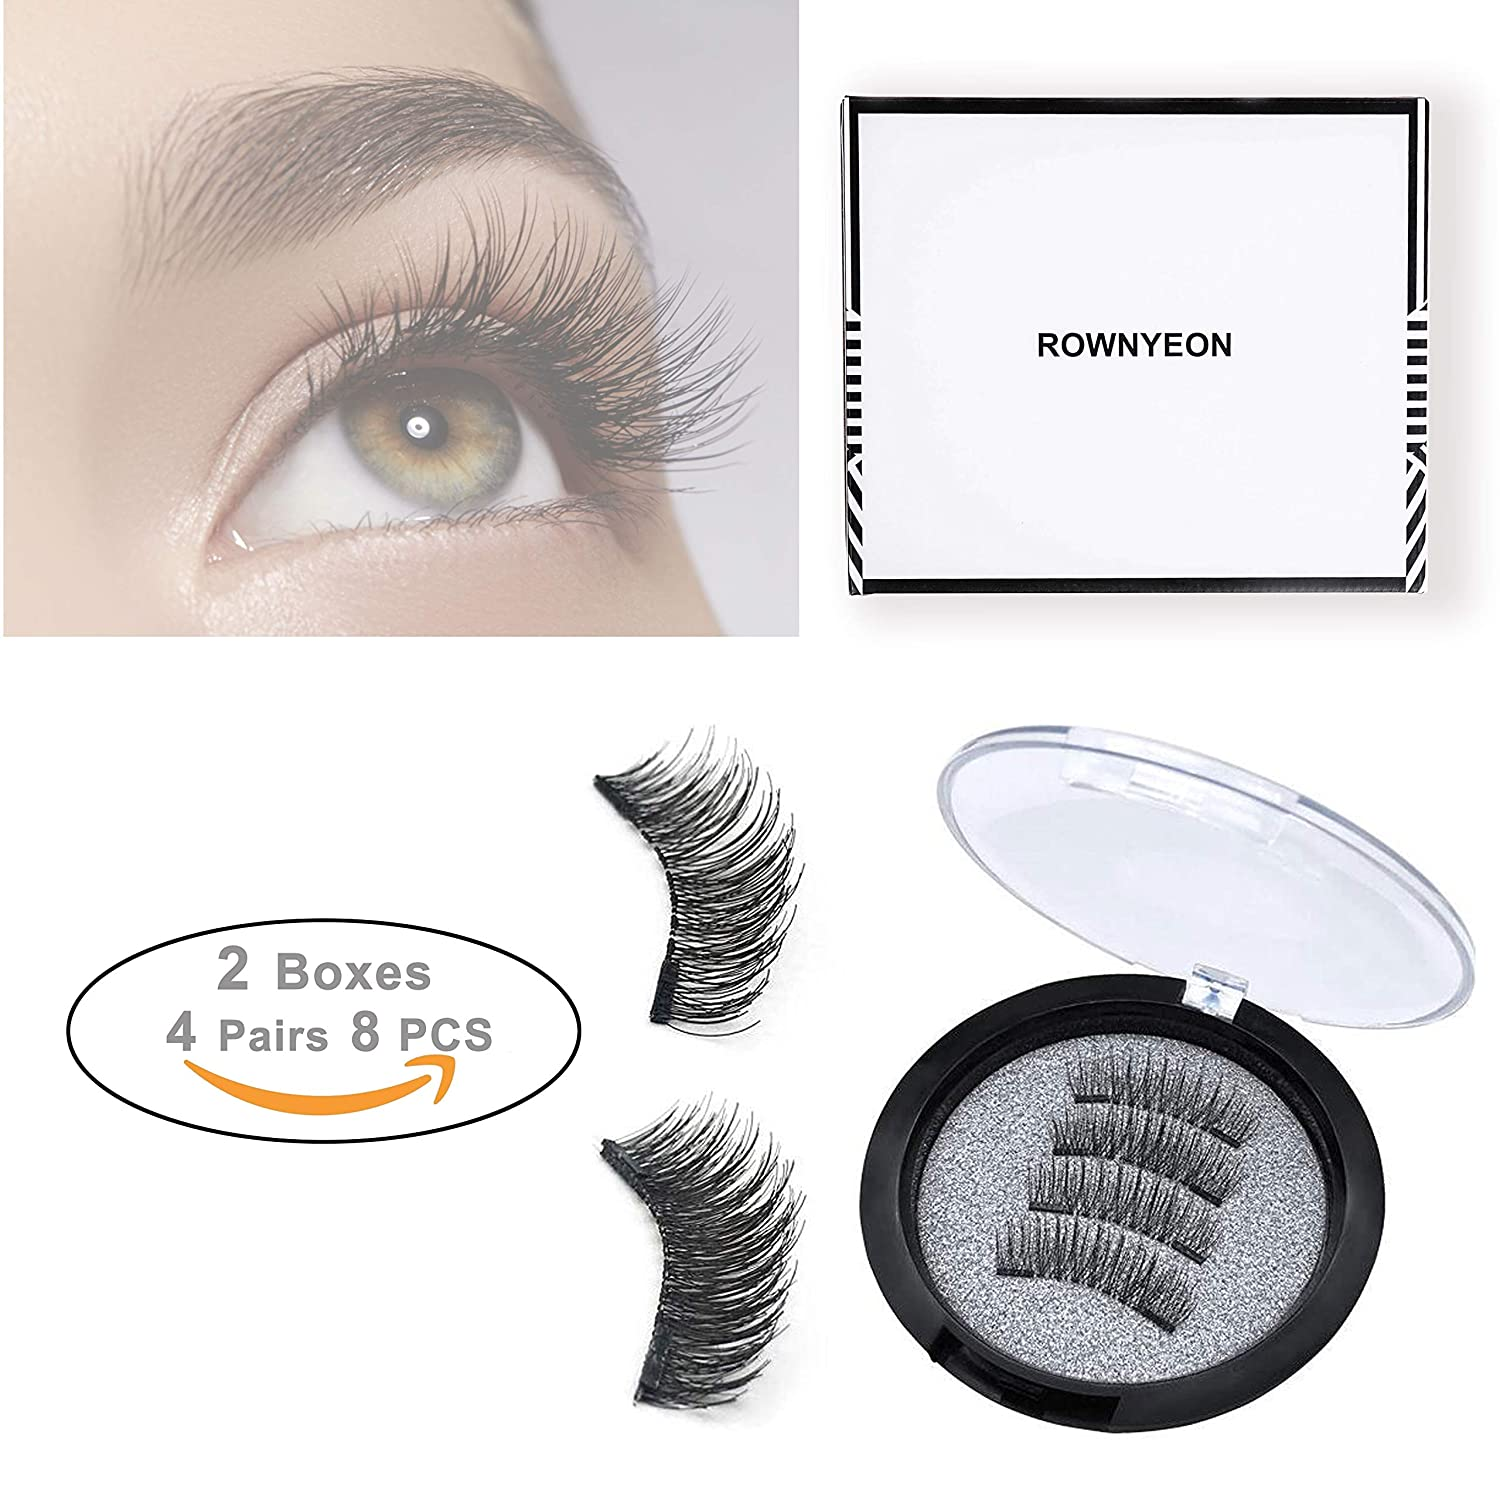 ROWNYEON Magnetic Eyelashes Dual Magnetic False Eyelashes Premium Quality for Natural Look Ultra Thin 3D Fiber Reusable Fake Lashes Extension for Natural Perfect for Round Eyes, 2 Pairs,8Pieces